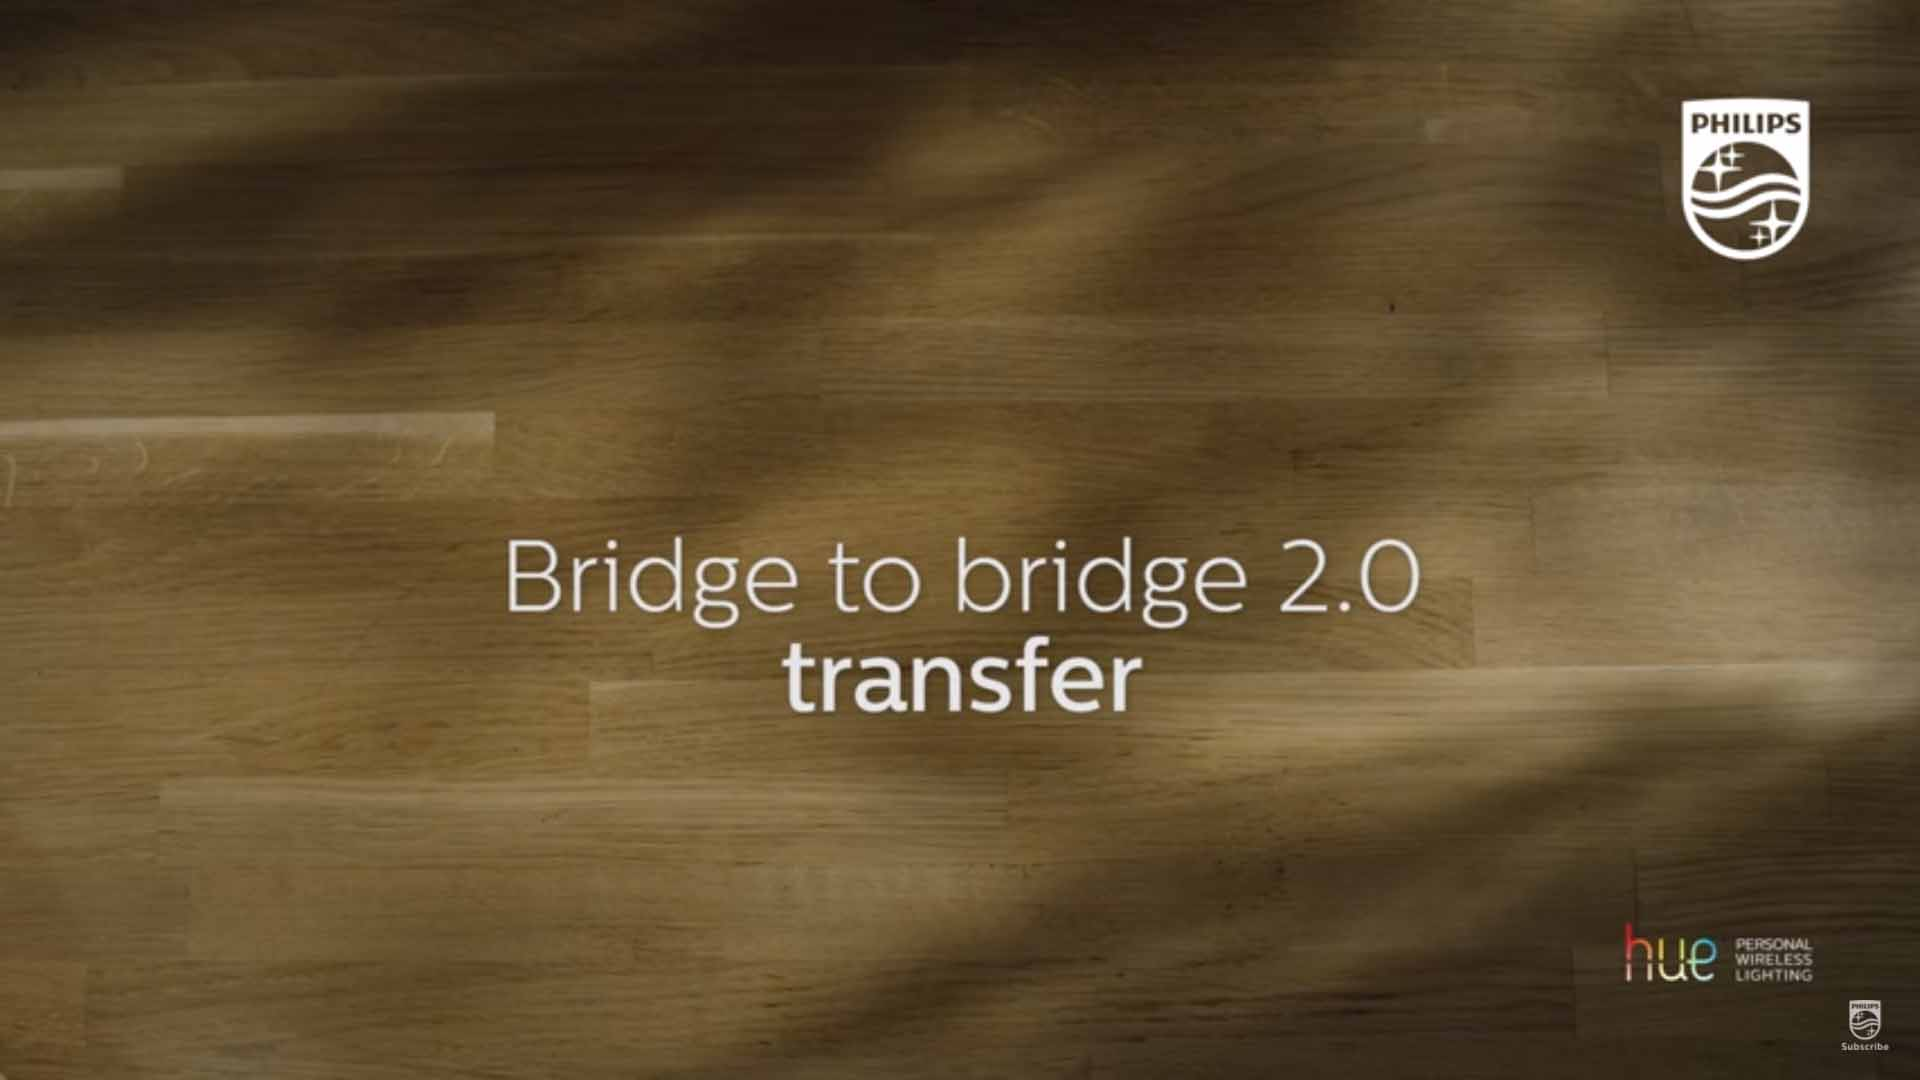 Philips Hue how to transfer from bridge to bridge 2.0 video